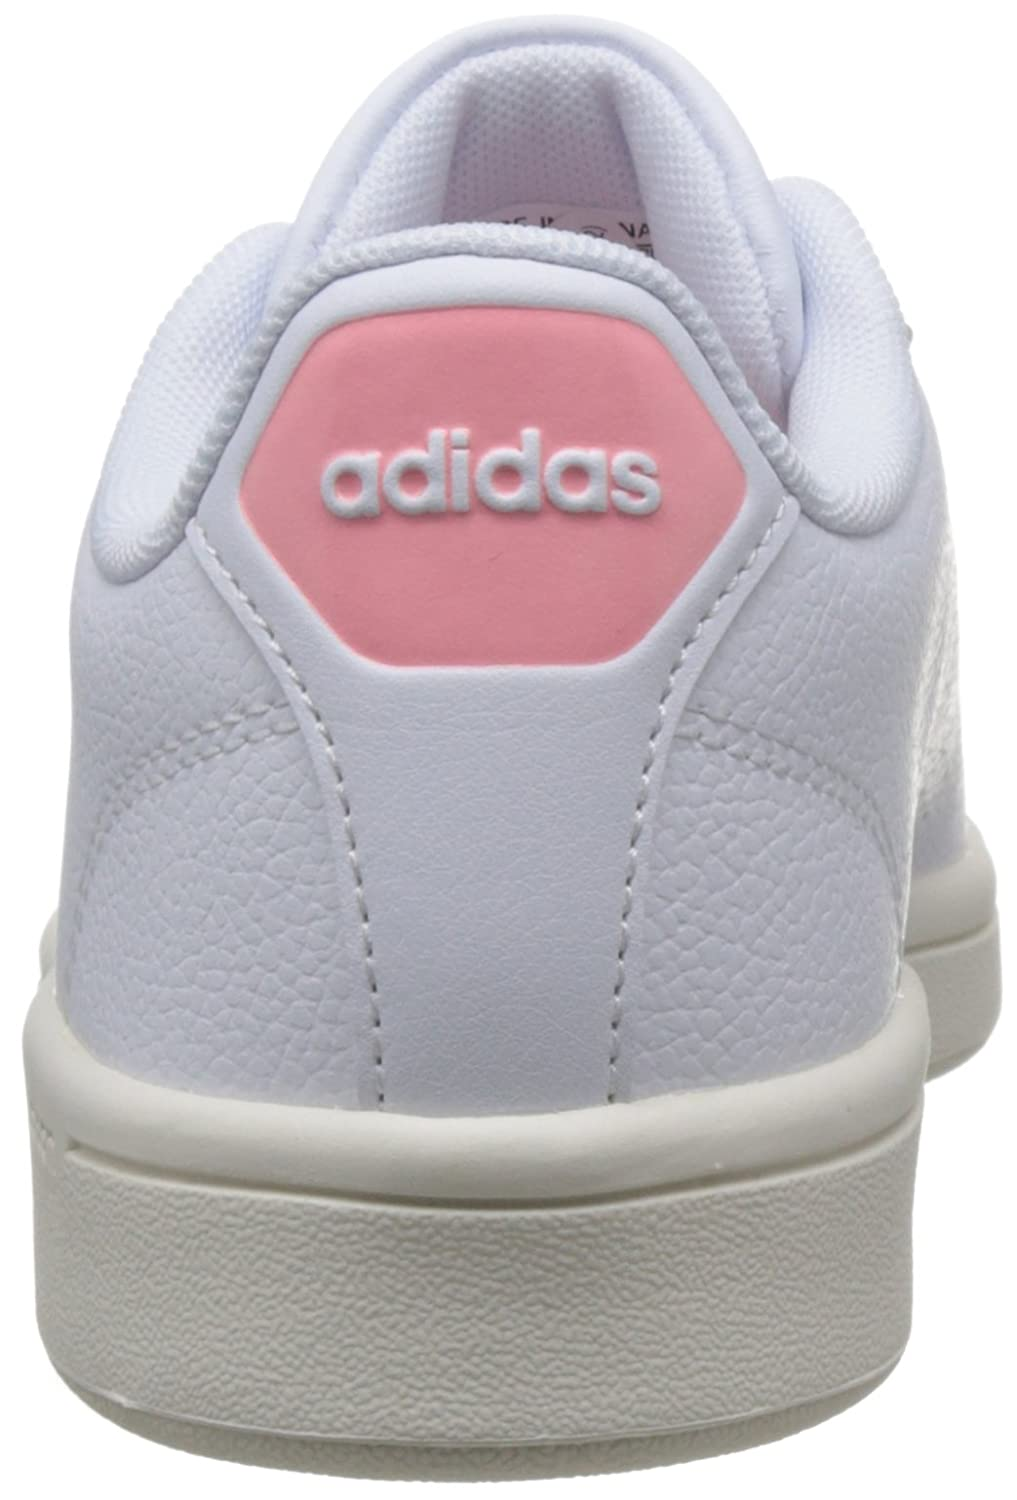 purchase cheap 62a89 6b6f8 adidas Cloudfoam Advantage Clean W, Scarpe da Ginnastica Basse Donna, Bianco  Footwear White Ray Pink, 44 EU  Amazon.it  Scarpe e borse